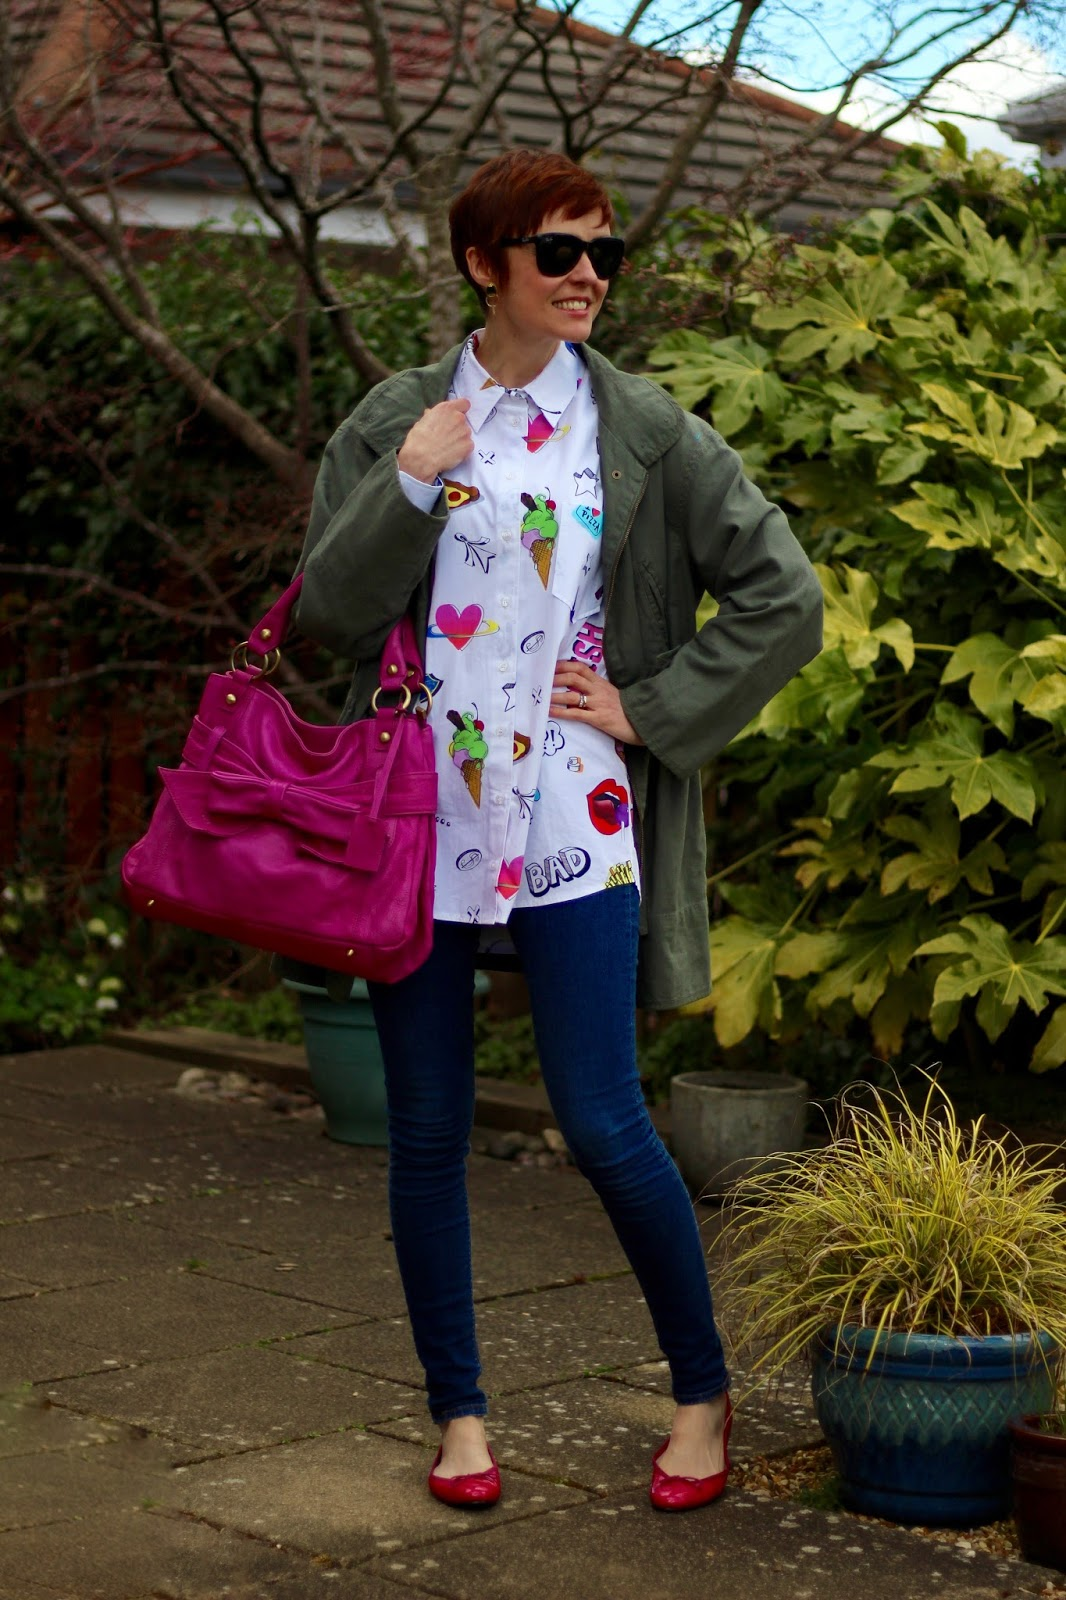 Asos Badge Shirt, Topshop Skinny Jeans, French Sole Ballerinas, Zara Khaki Jacket, Hot pink bag.